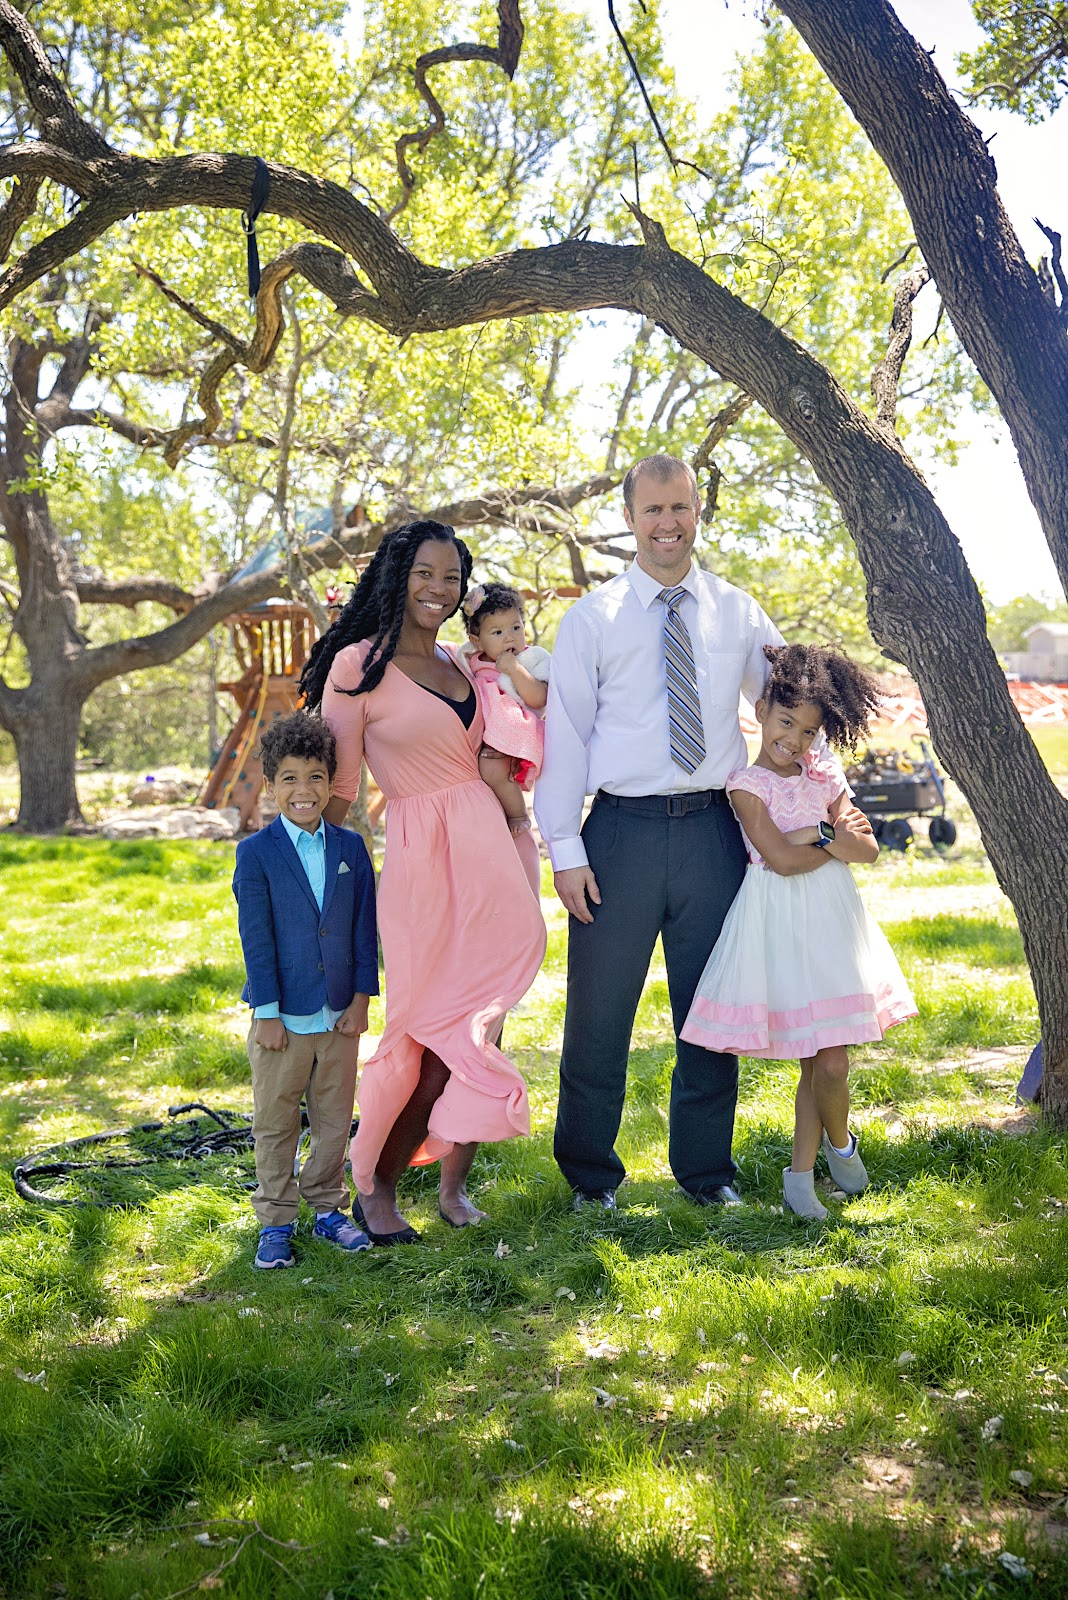 Interracial family standing in yard. Sharing the goal to pay off home in 5 years.